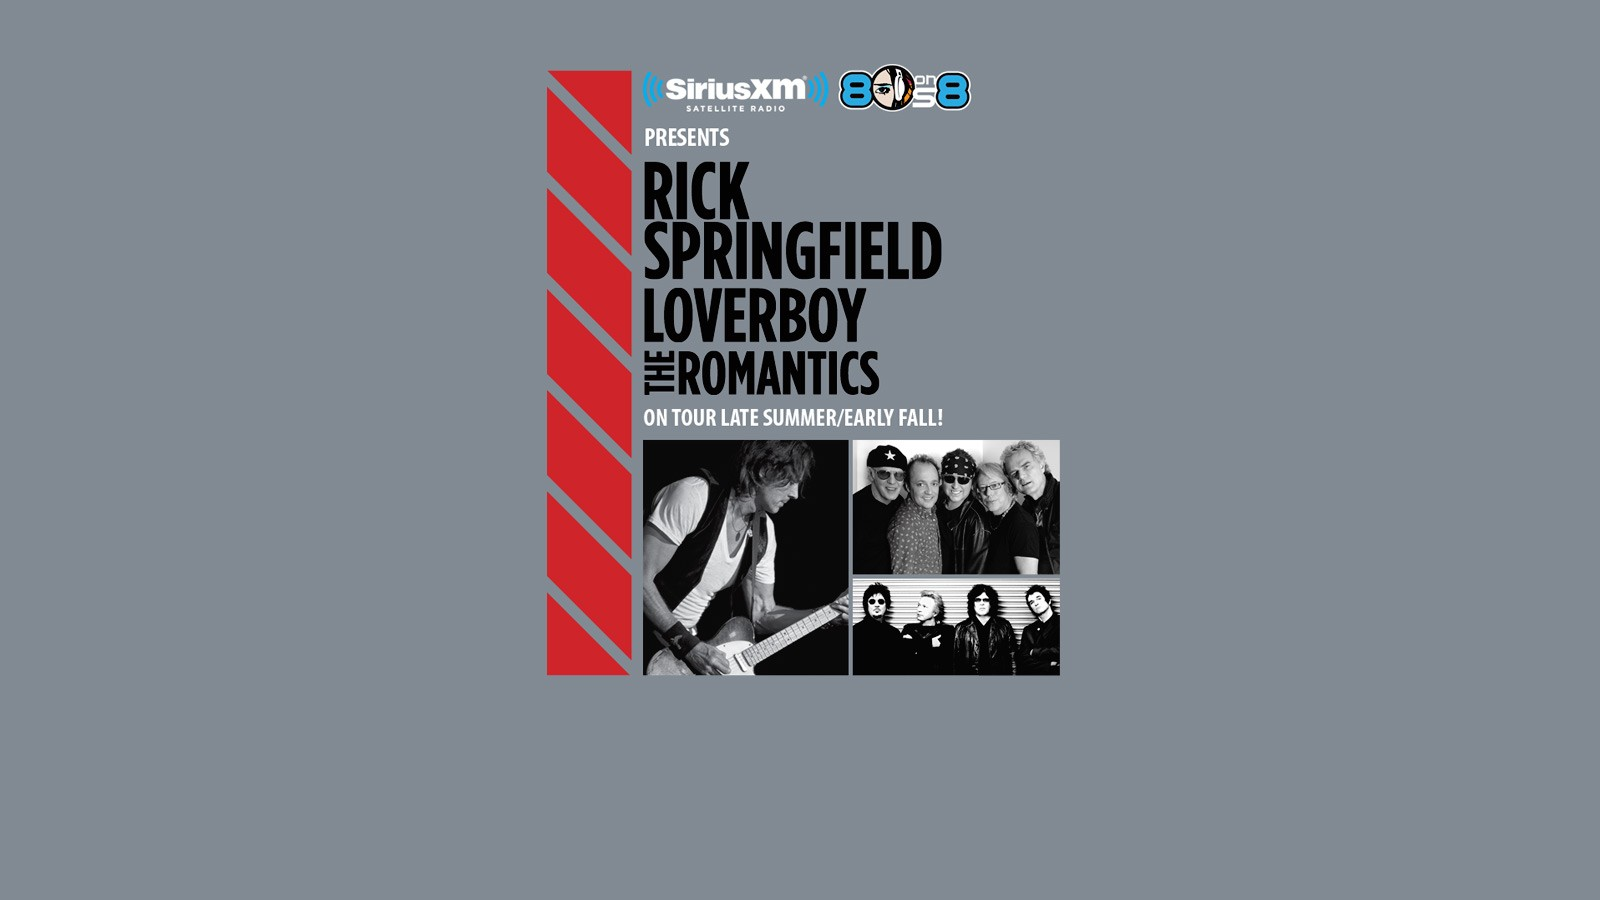 Rick Springfield, Loverboy and The Romantics Tour